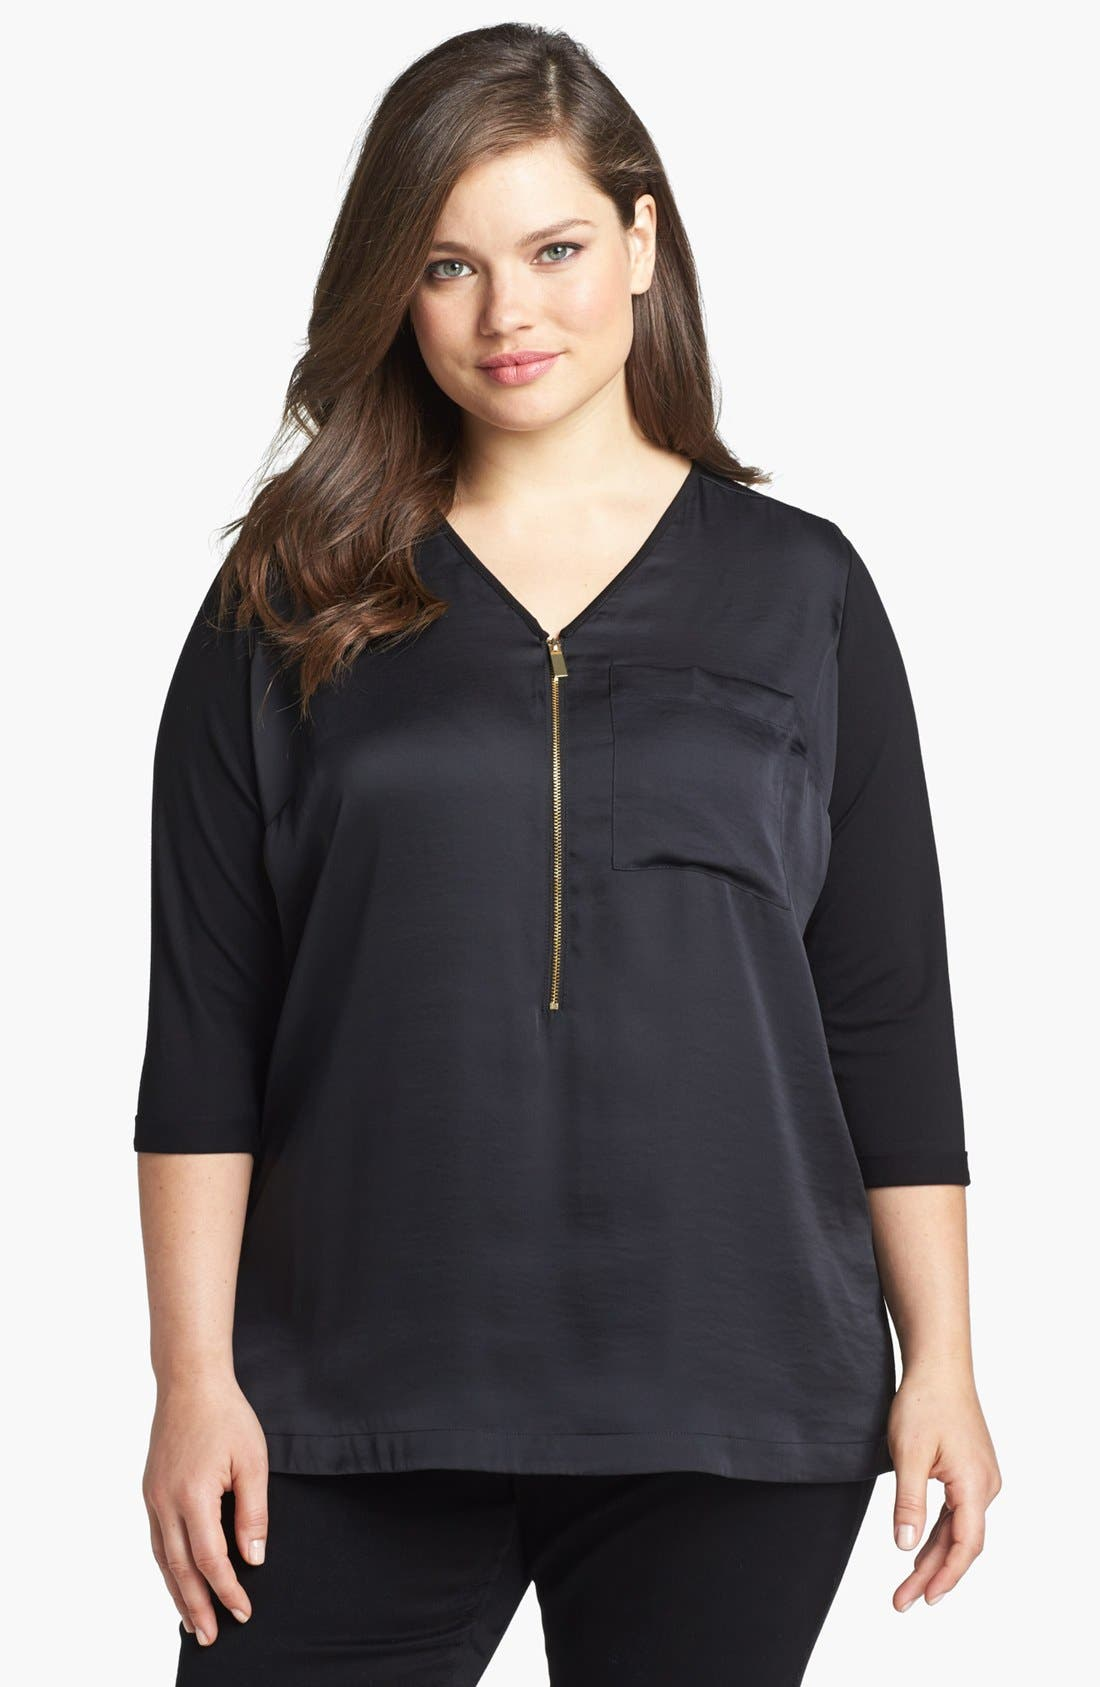 Main Image - Vince Camuto Zip Placket Mixed Media Tunic Top (Plus Size)